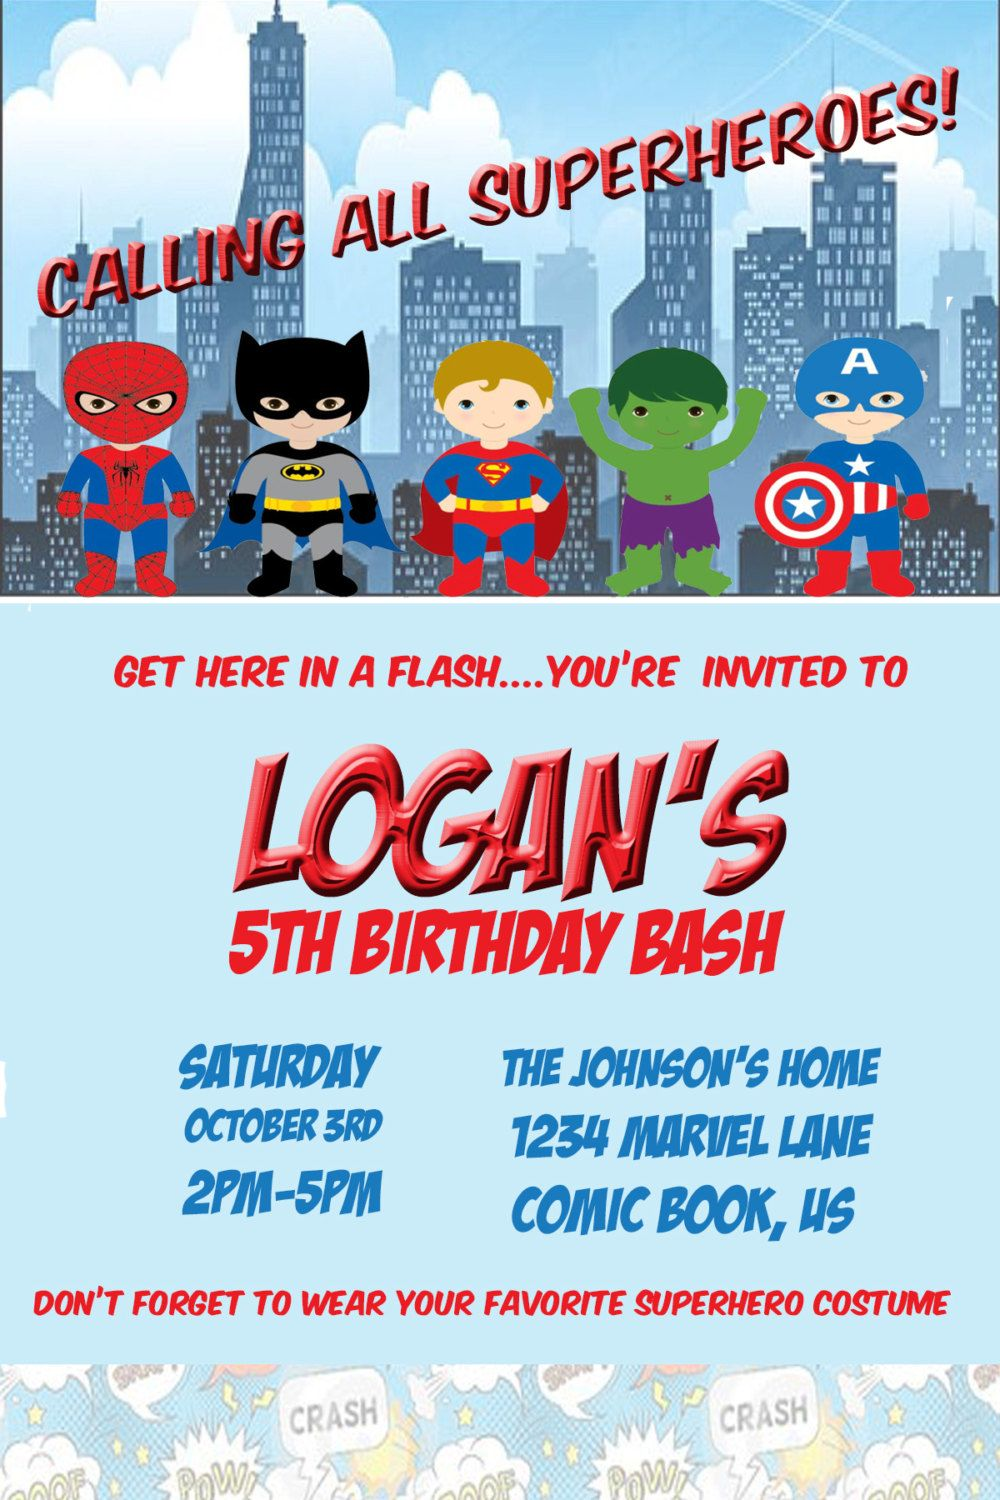 Superhero Birthday Party Invitation Digital Printable Customizable By WonderDreamDesigns On Etsy